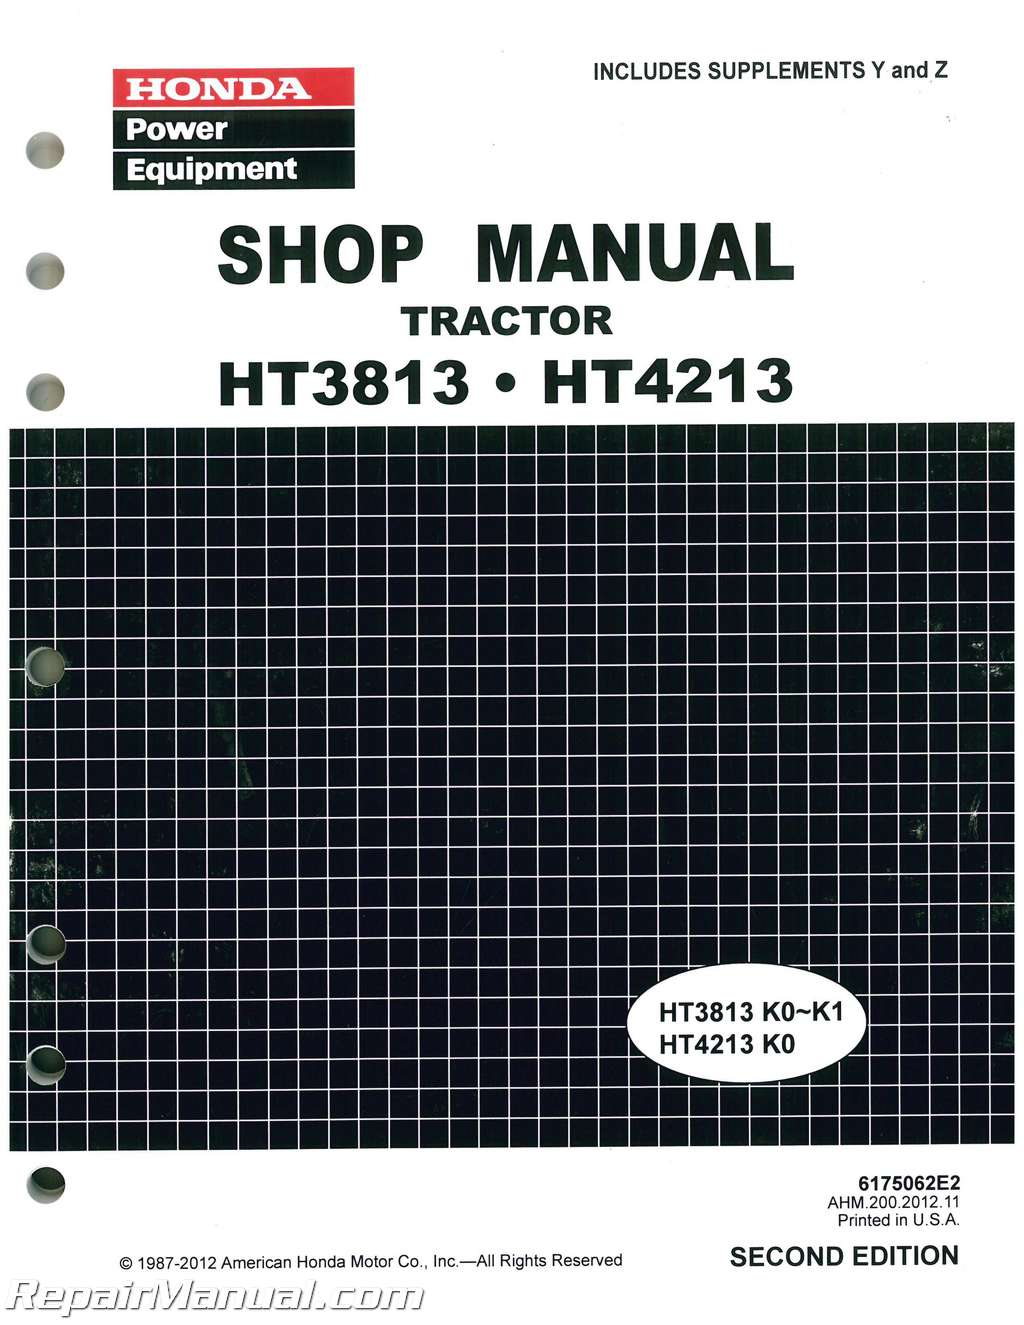 Honda 5518 Wiring Diagram Library Ht3813 Ht4213 Lawn Tractor Shop Manual